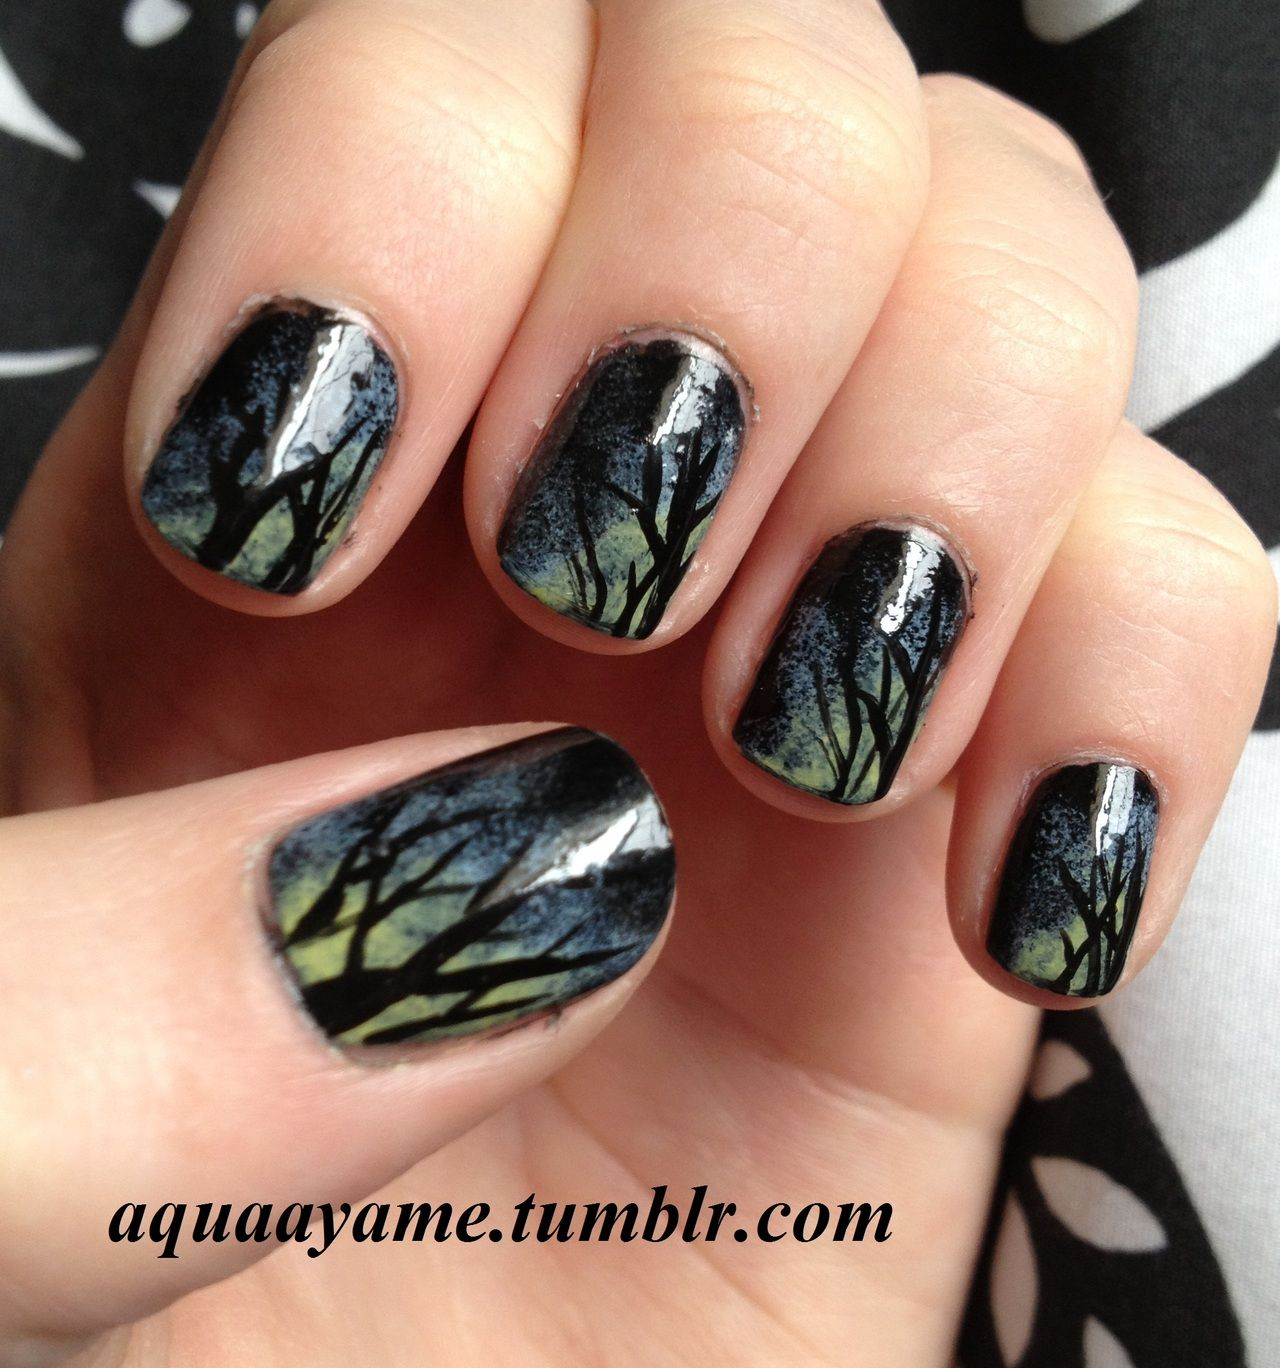 Pin by Melia Marte on Nails I like | Pinterest | Tree nails, Nail ...